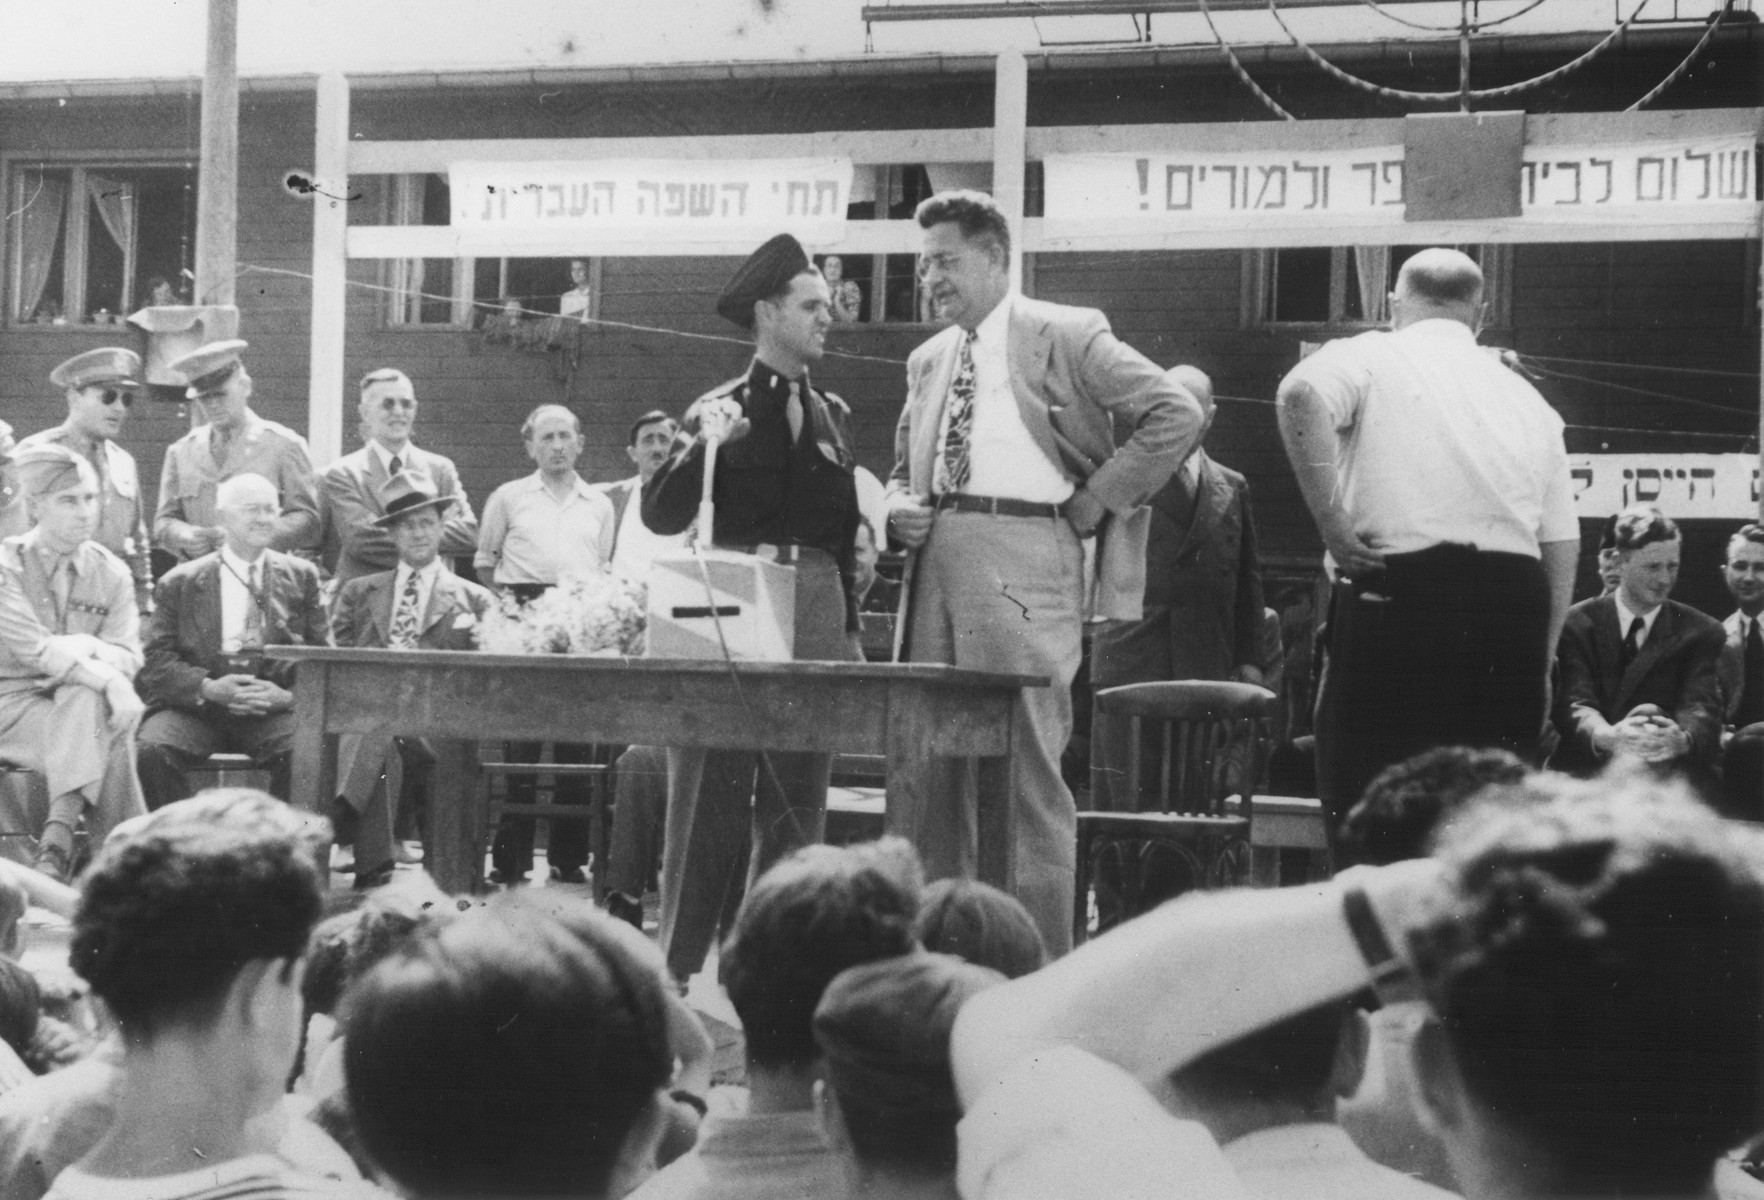 "U.S. Army chaplain Rabbi Mayer Abramowitz converses with an official at an outdoor forum in the Schlachtensee displaced persons camp.  The forum was held for the benefit of a visiting international commission.  Above the podium is a sign in Hebrew that reads, ""Long live the Hebrew language."""